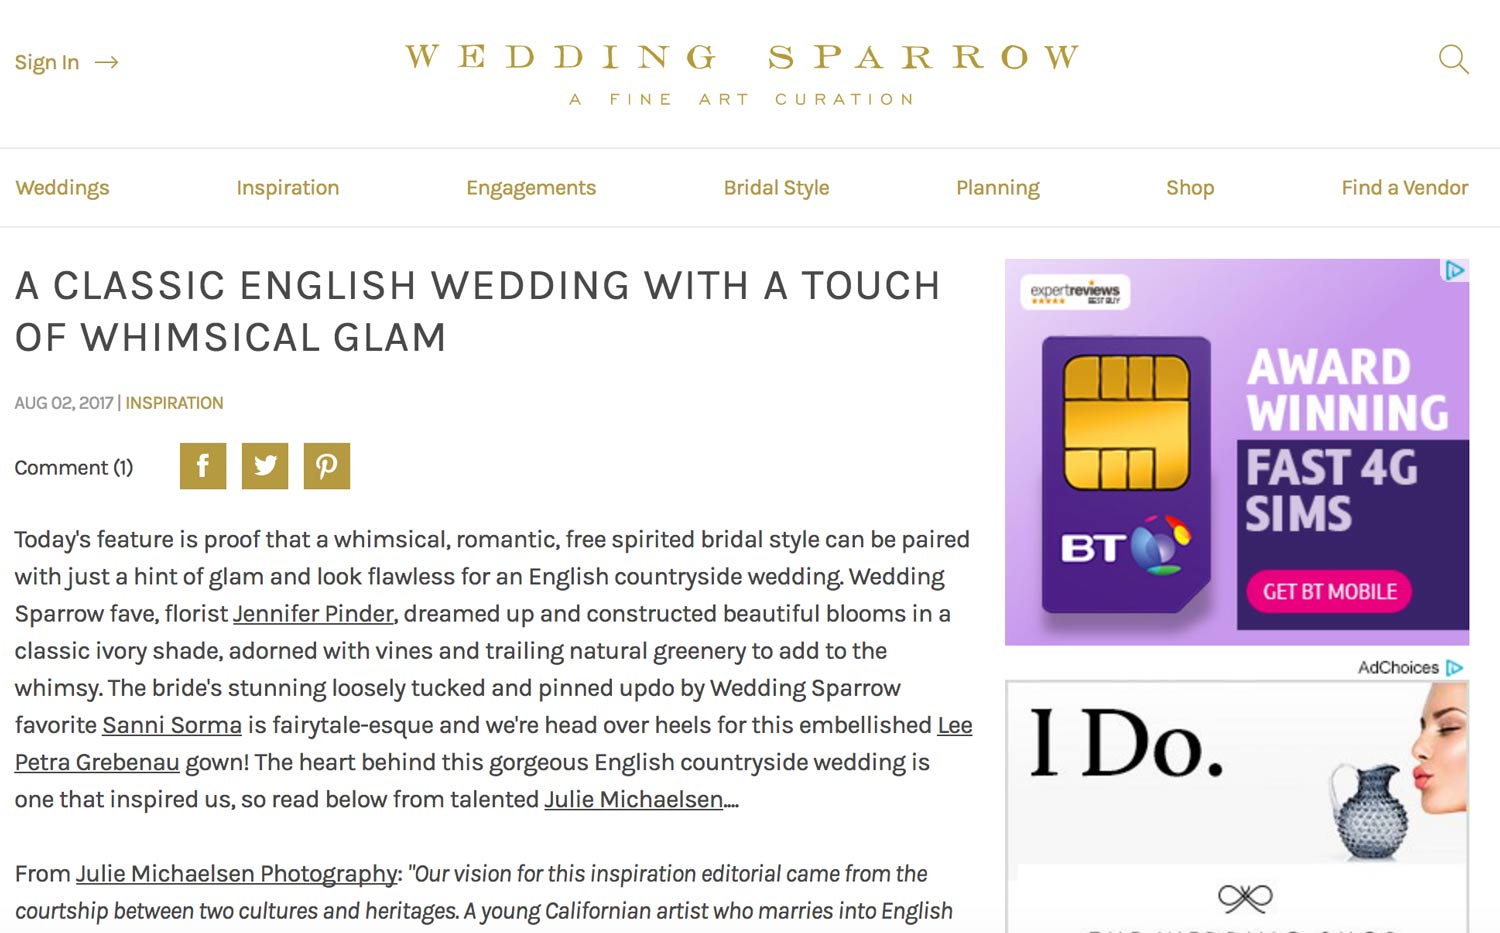 Wedding Sparrow website